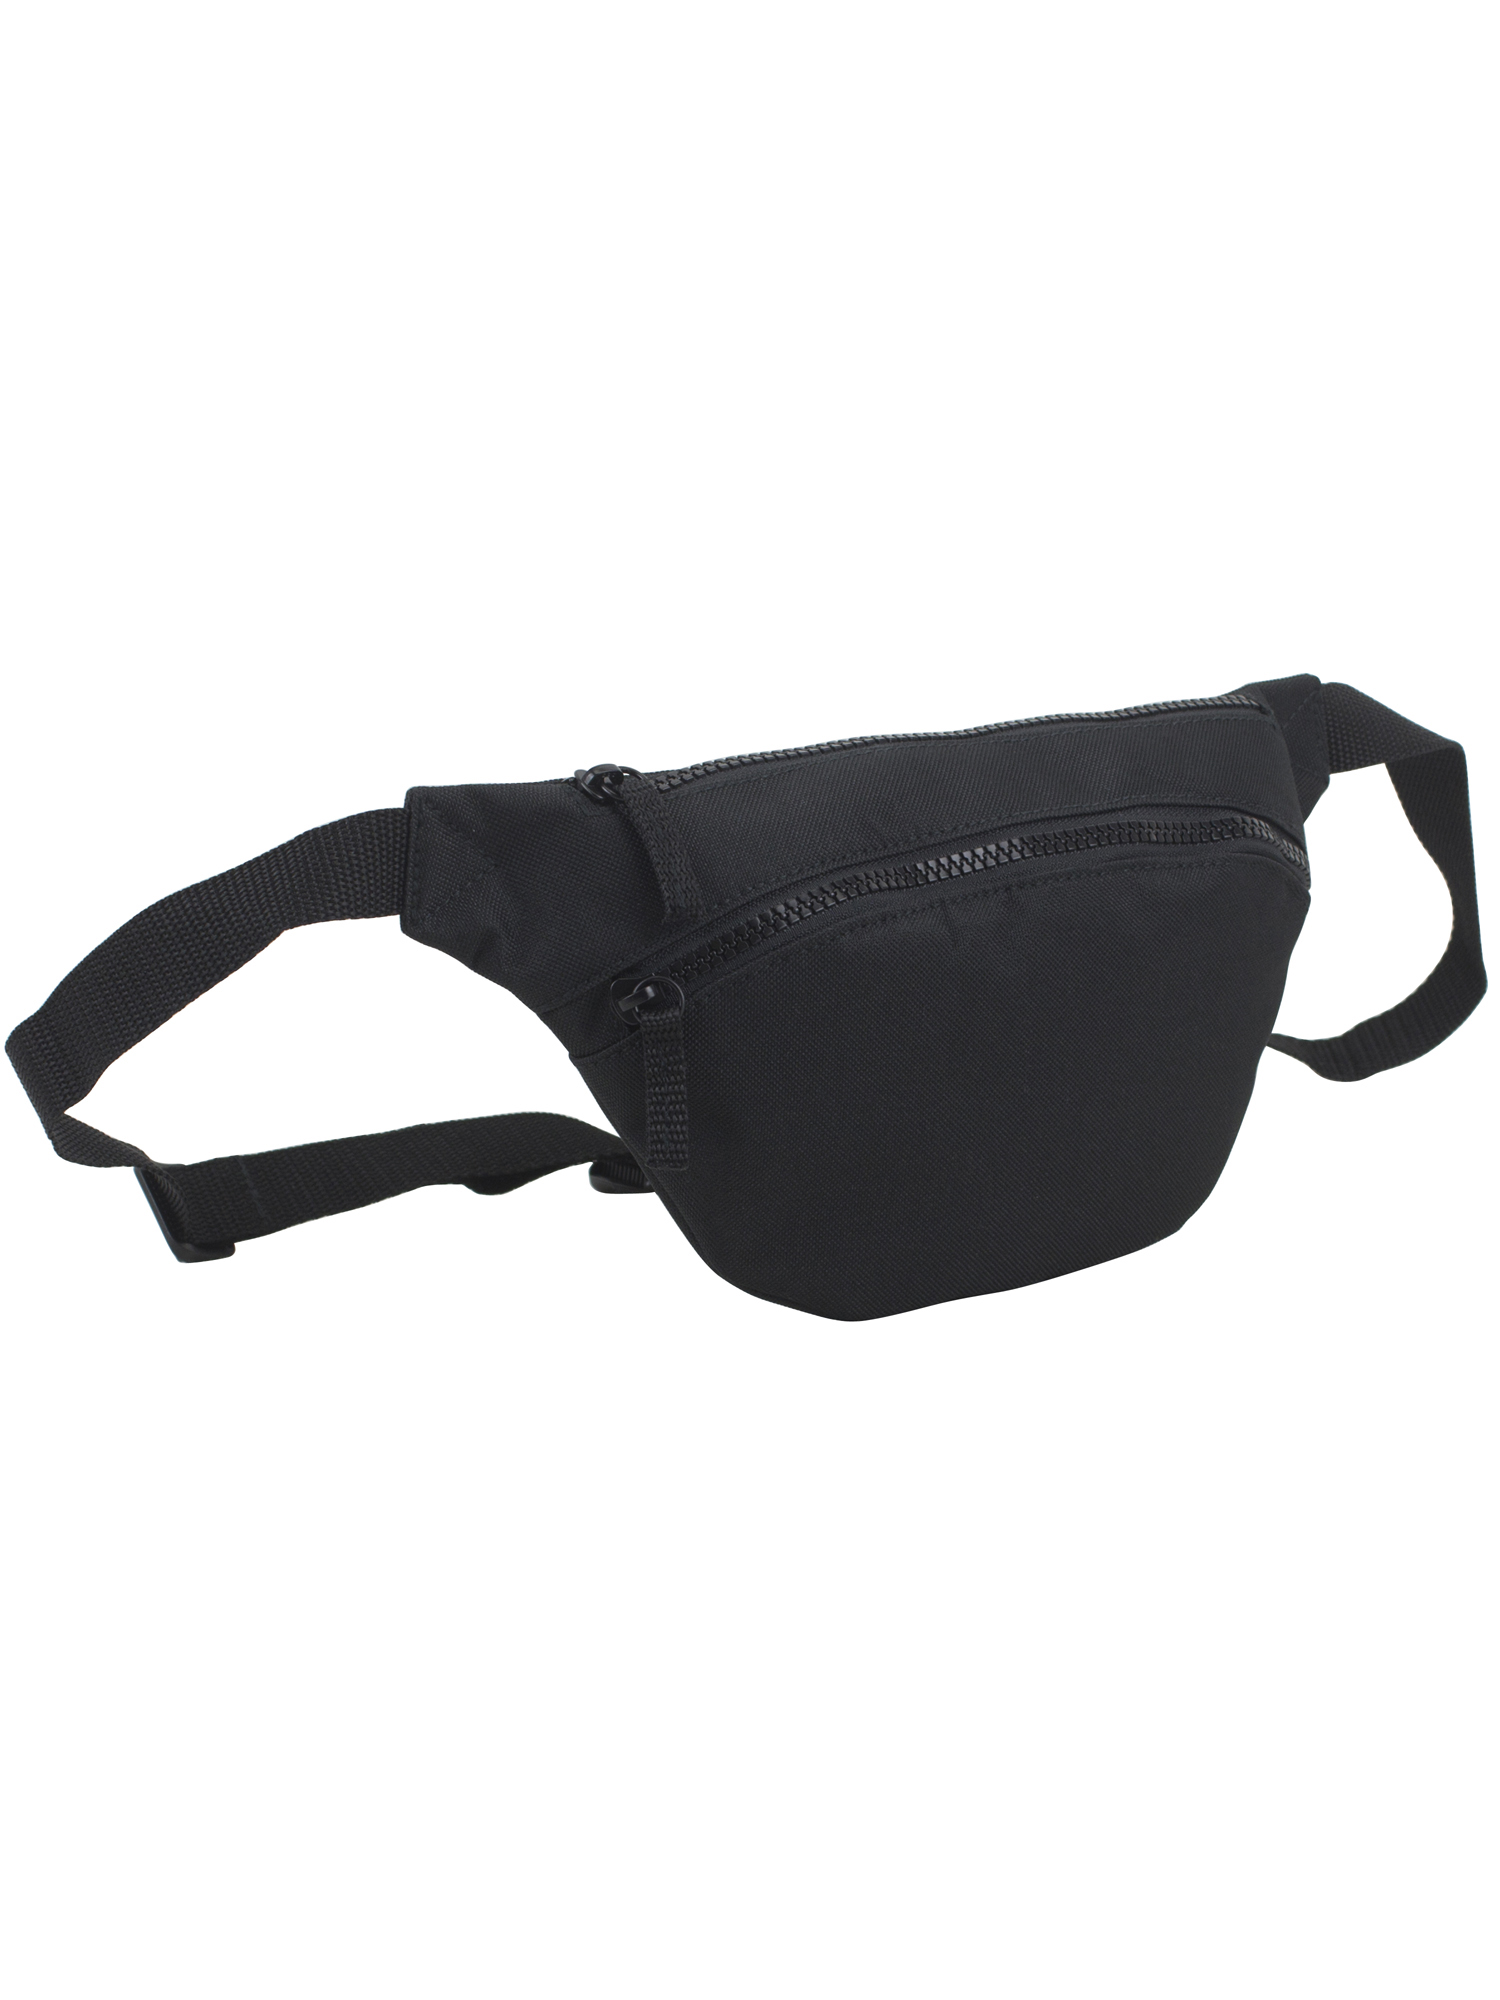 Have You Tried To Turn It Off And On Again Waist Bag Fanny Pack Adjustable